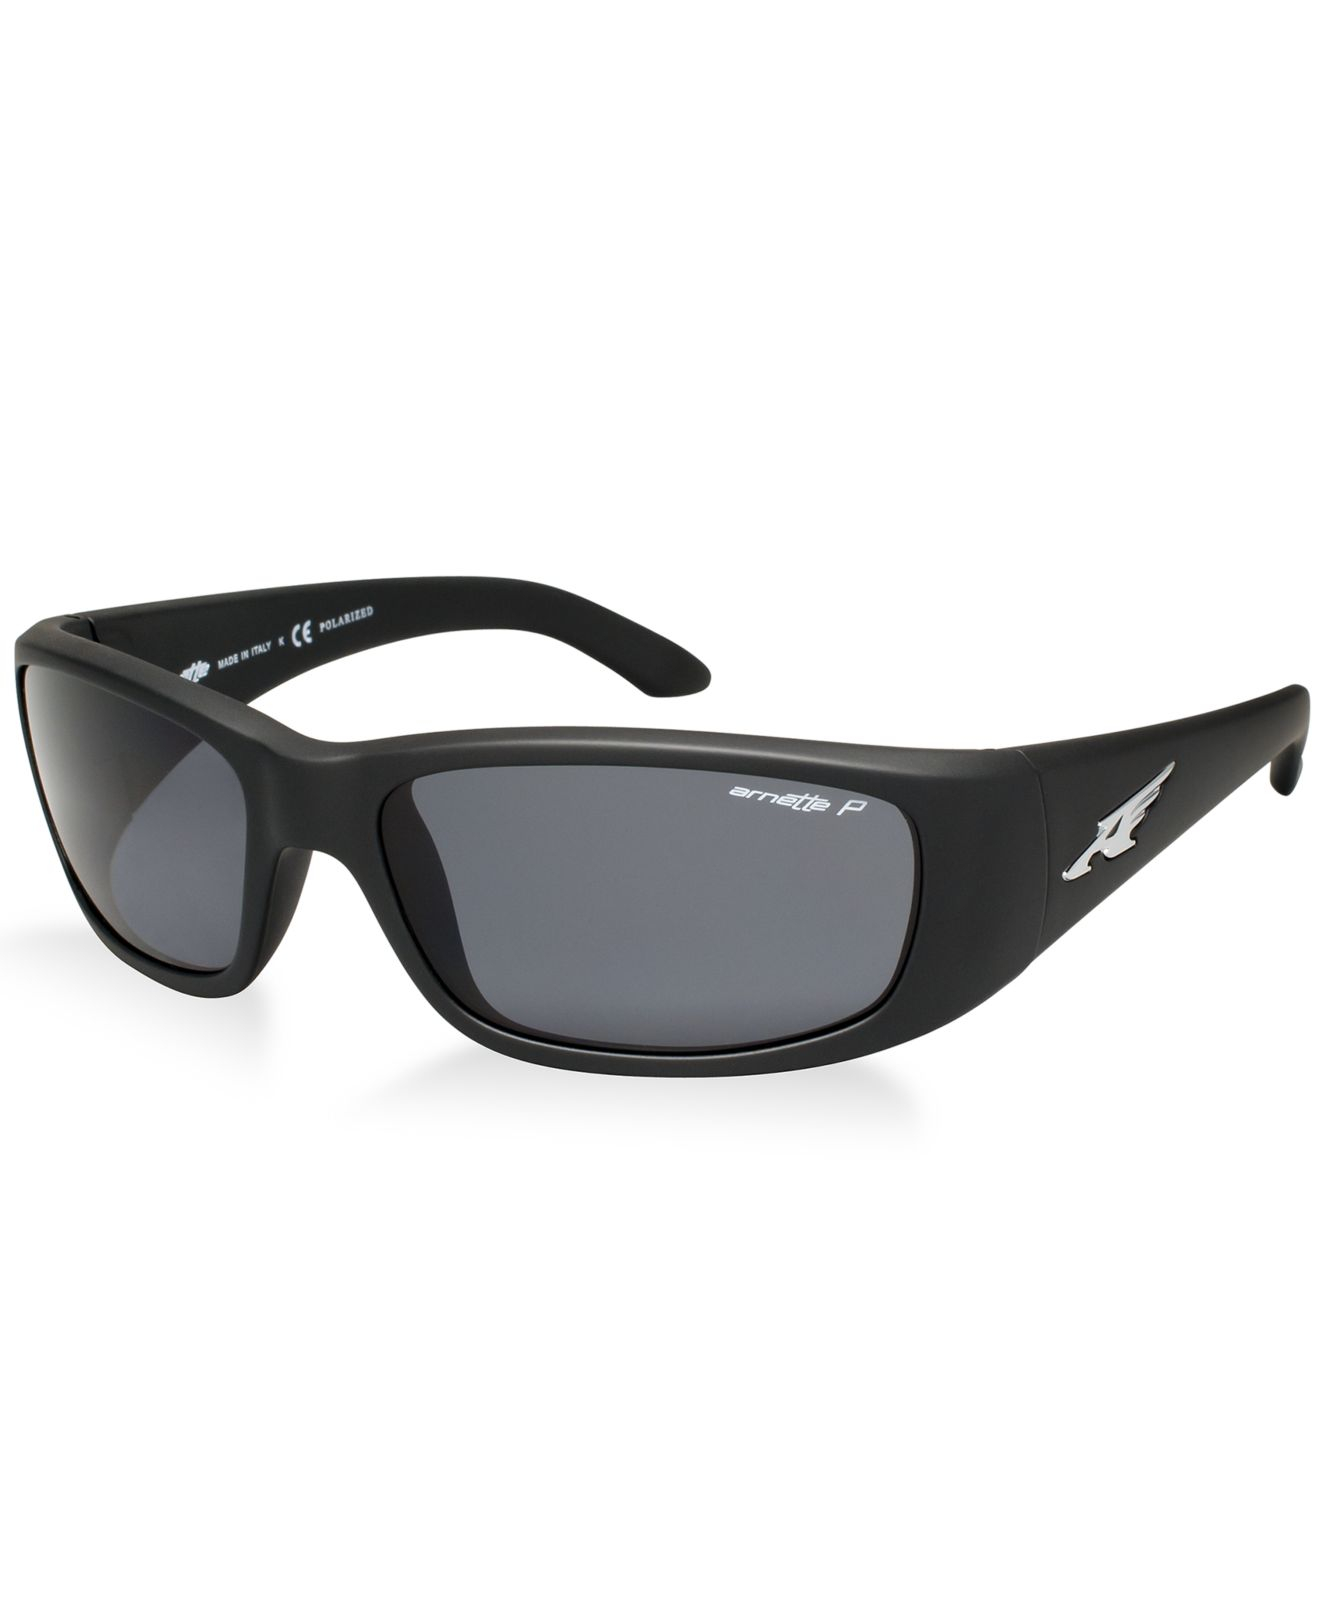 Arnette sunglasses in Black